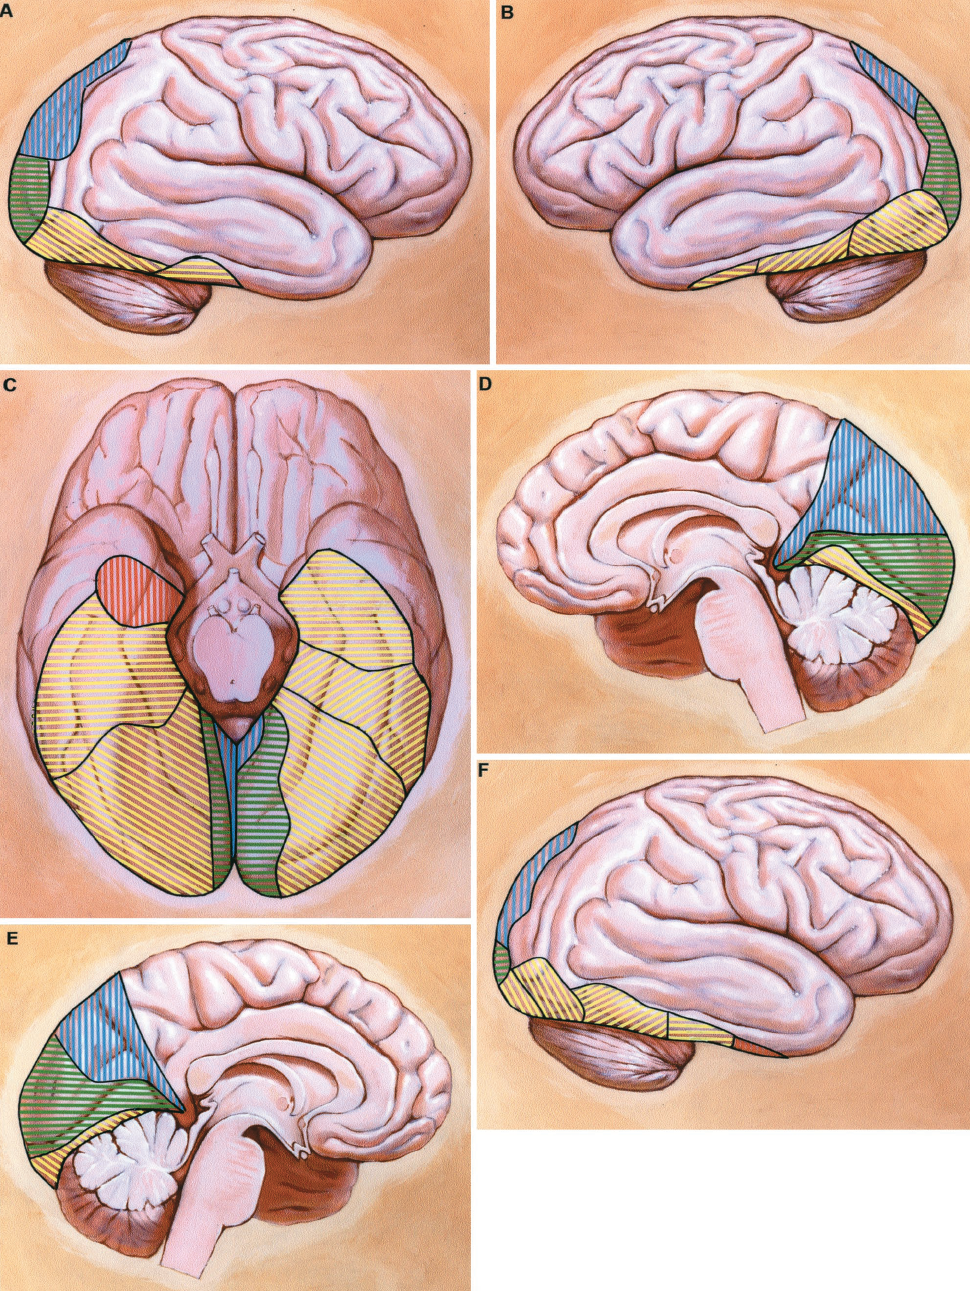 FIGURE 2.37 A-F. Lateral, medial, and basal views of the brain with color-coded sectors representing specific PCA cortical branch distribution. The color code corresponding to each PCA branch is as follows: red, hippocampal artery; yellow, temporal arteries; green, calcarine arteries; and blue, parieto-occipital artery. The temporal arteries are further subdivided: transverse yellow stripes, anterior temporal artery; vertical yellow stripes, common temporal artery; diagonal stripes, angled upward to right, anterior temporal artery; and, diagonal stripes angled down to right, posterior temporal artery. The most common pattern (44% of hemispheres) is represented on the right cerebral hemisphere (A and D, and the left half of the basal view, C). This pattern includes hippocampal, anterior temporal, and posterior temporal arteries. The cortical distribution of the parieto-occipital artery is larger than that of the calcarine artery. The second most-common pattern (20% of hemispheres) is represented on the left cerebral hemisphere (B and E, and the right half of the basal view, C). This pattern includes anterior, middle, and posterior temporal, calcarine, and parieto-occipital arteries. In this pattern the anterior temporal artery supplies the region usually supplied by the hippocampal artery.The third most-common pattern (16% of hemispheres) is shown on the right hemisphere (F and I, and left half of basal view, H). In this pattern, there is a common temporal artery that supplies the entire inferior surface of the temporal lobe. The calcarine and parieto-occipital arteries are also present.